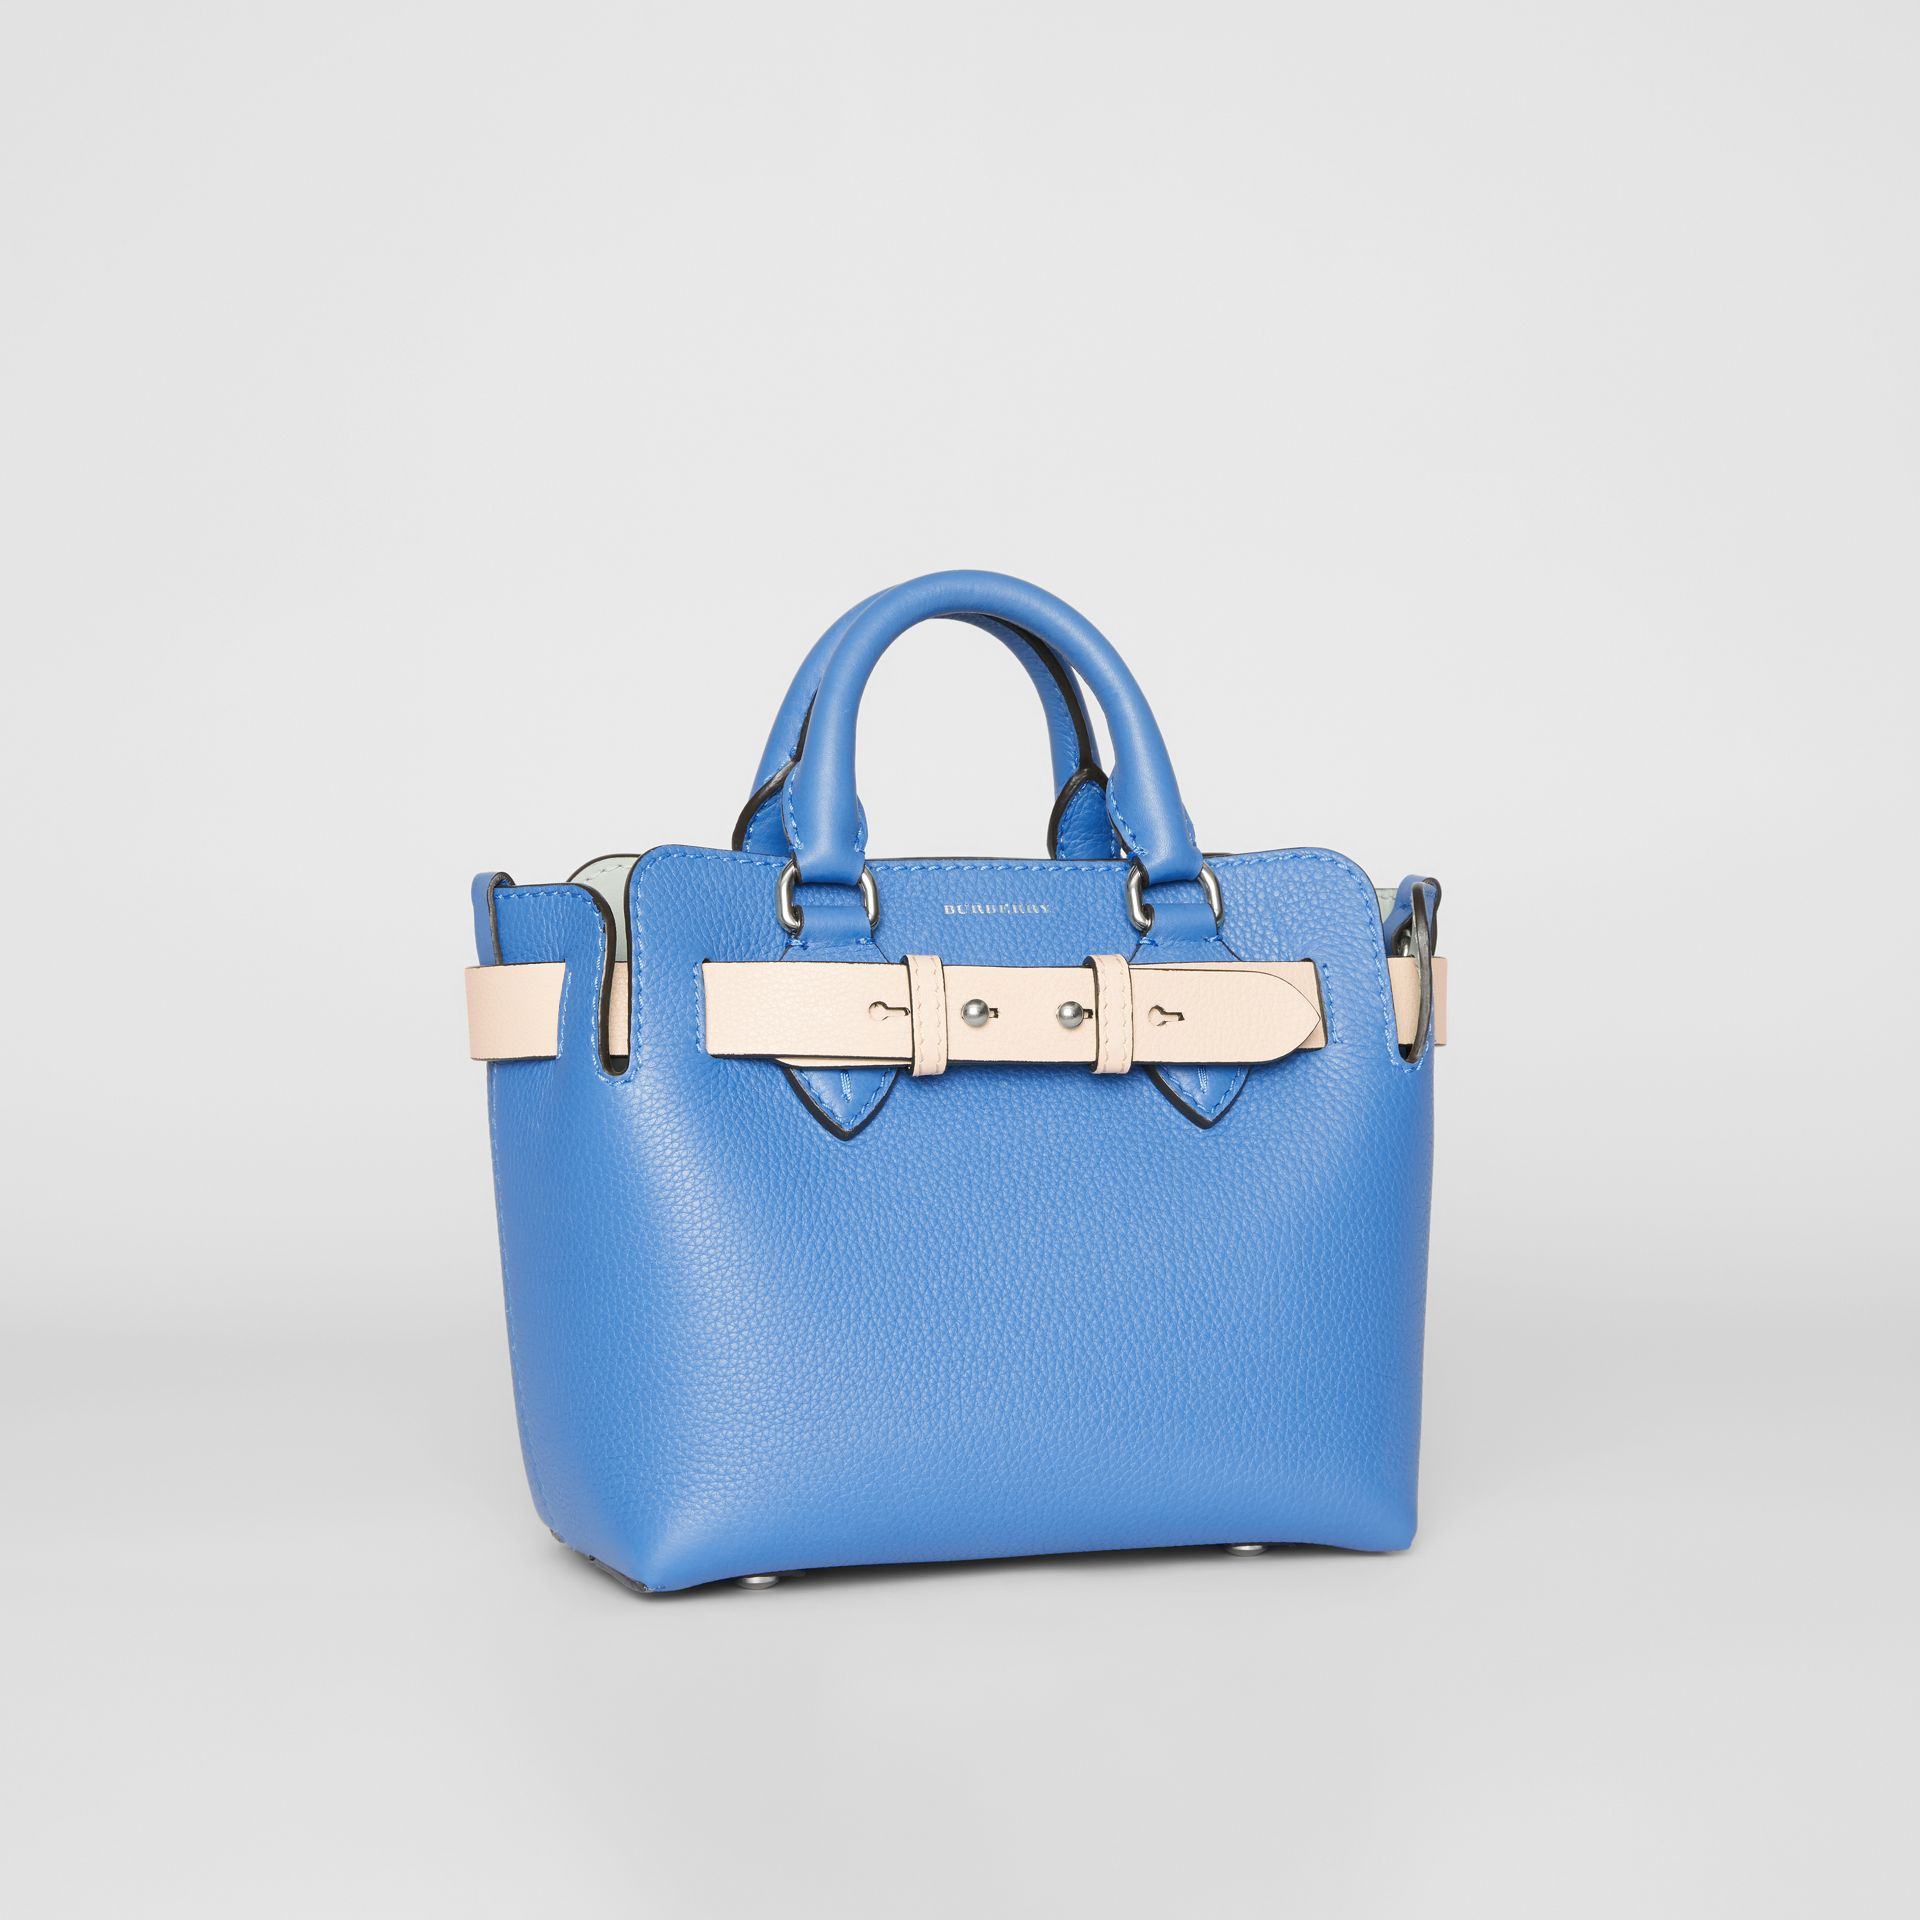 Borsa The Belt mini in pelle (Blu Ortensia) - Donna | Burberry - immagine della galleria 6